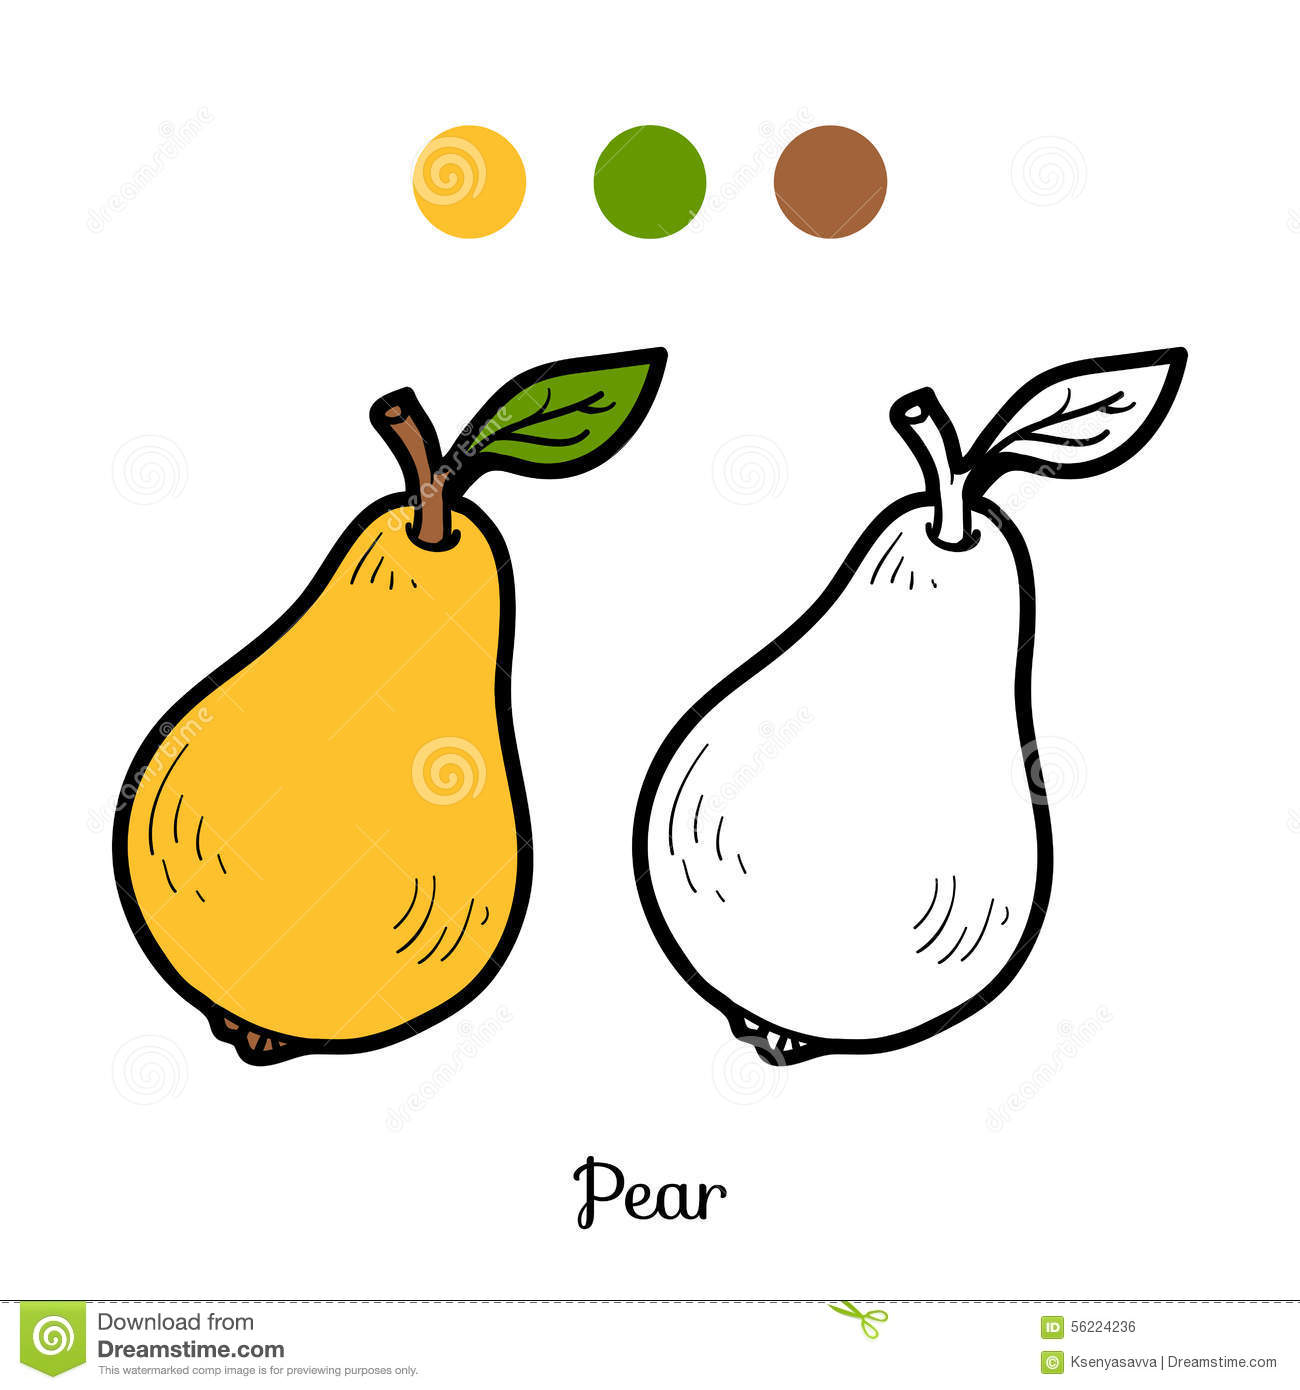 Coloring book pictures of vegetables - Coloring Book Fruits And Vegetables Pear Royalty Free Stock Image